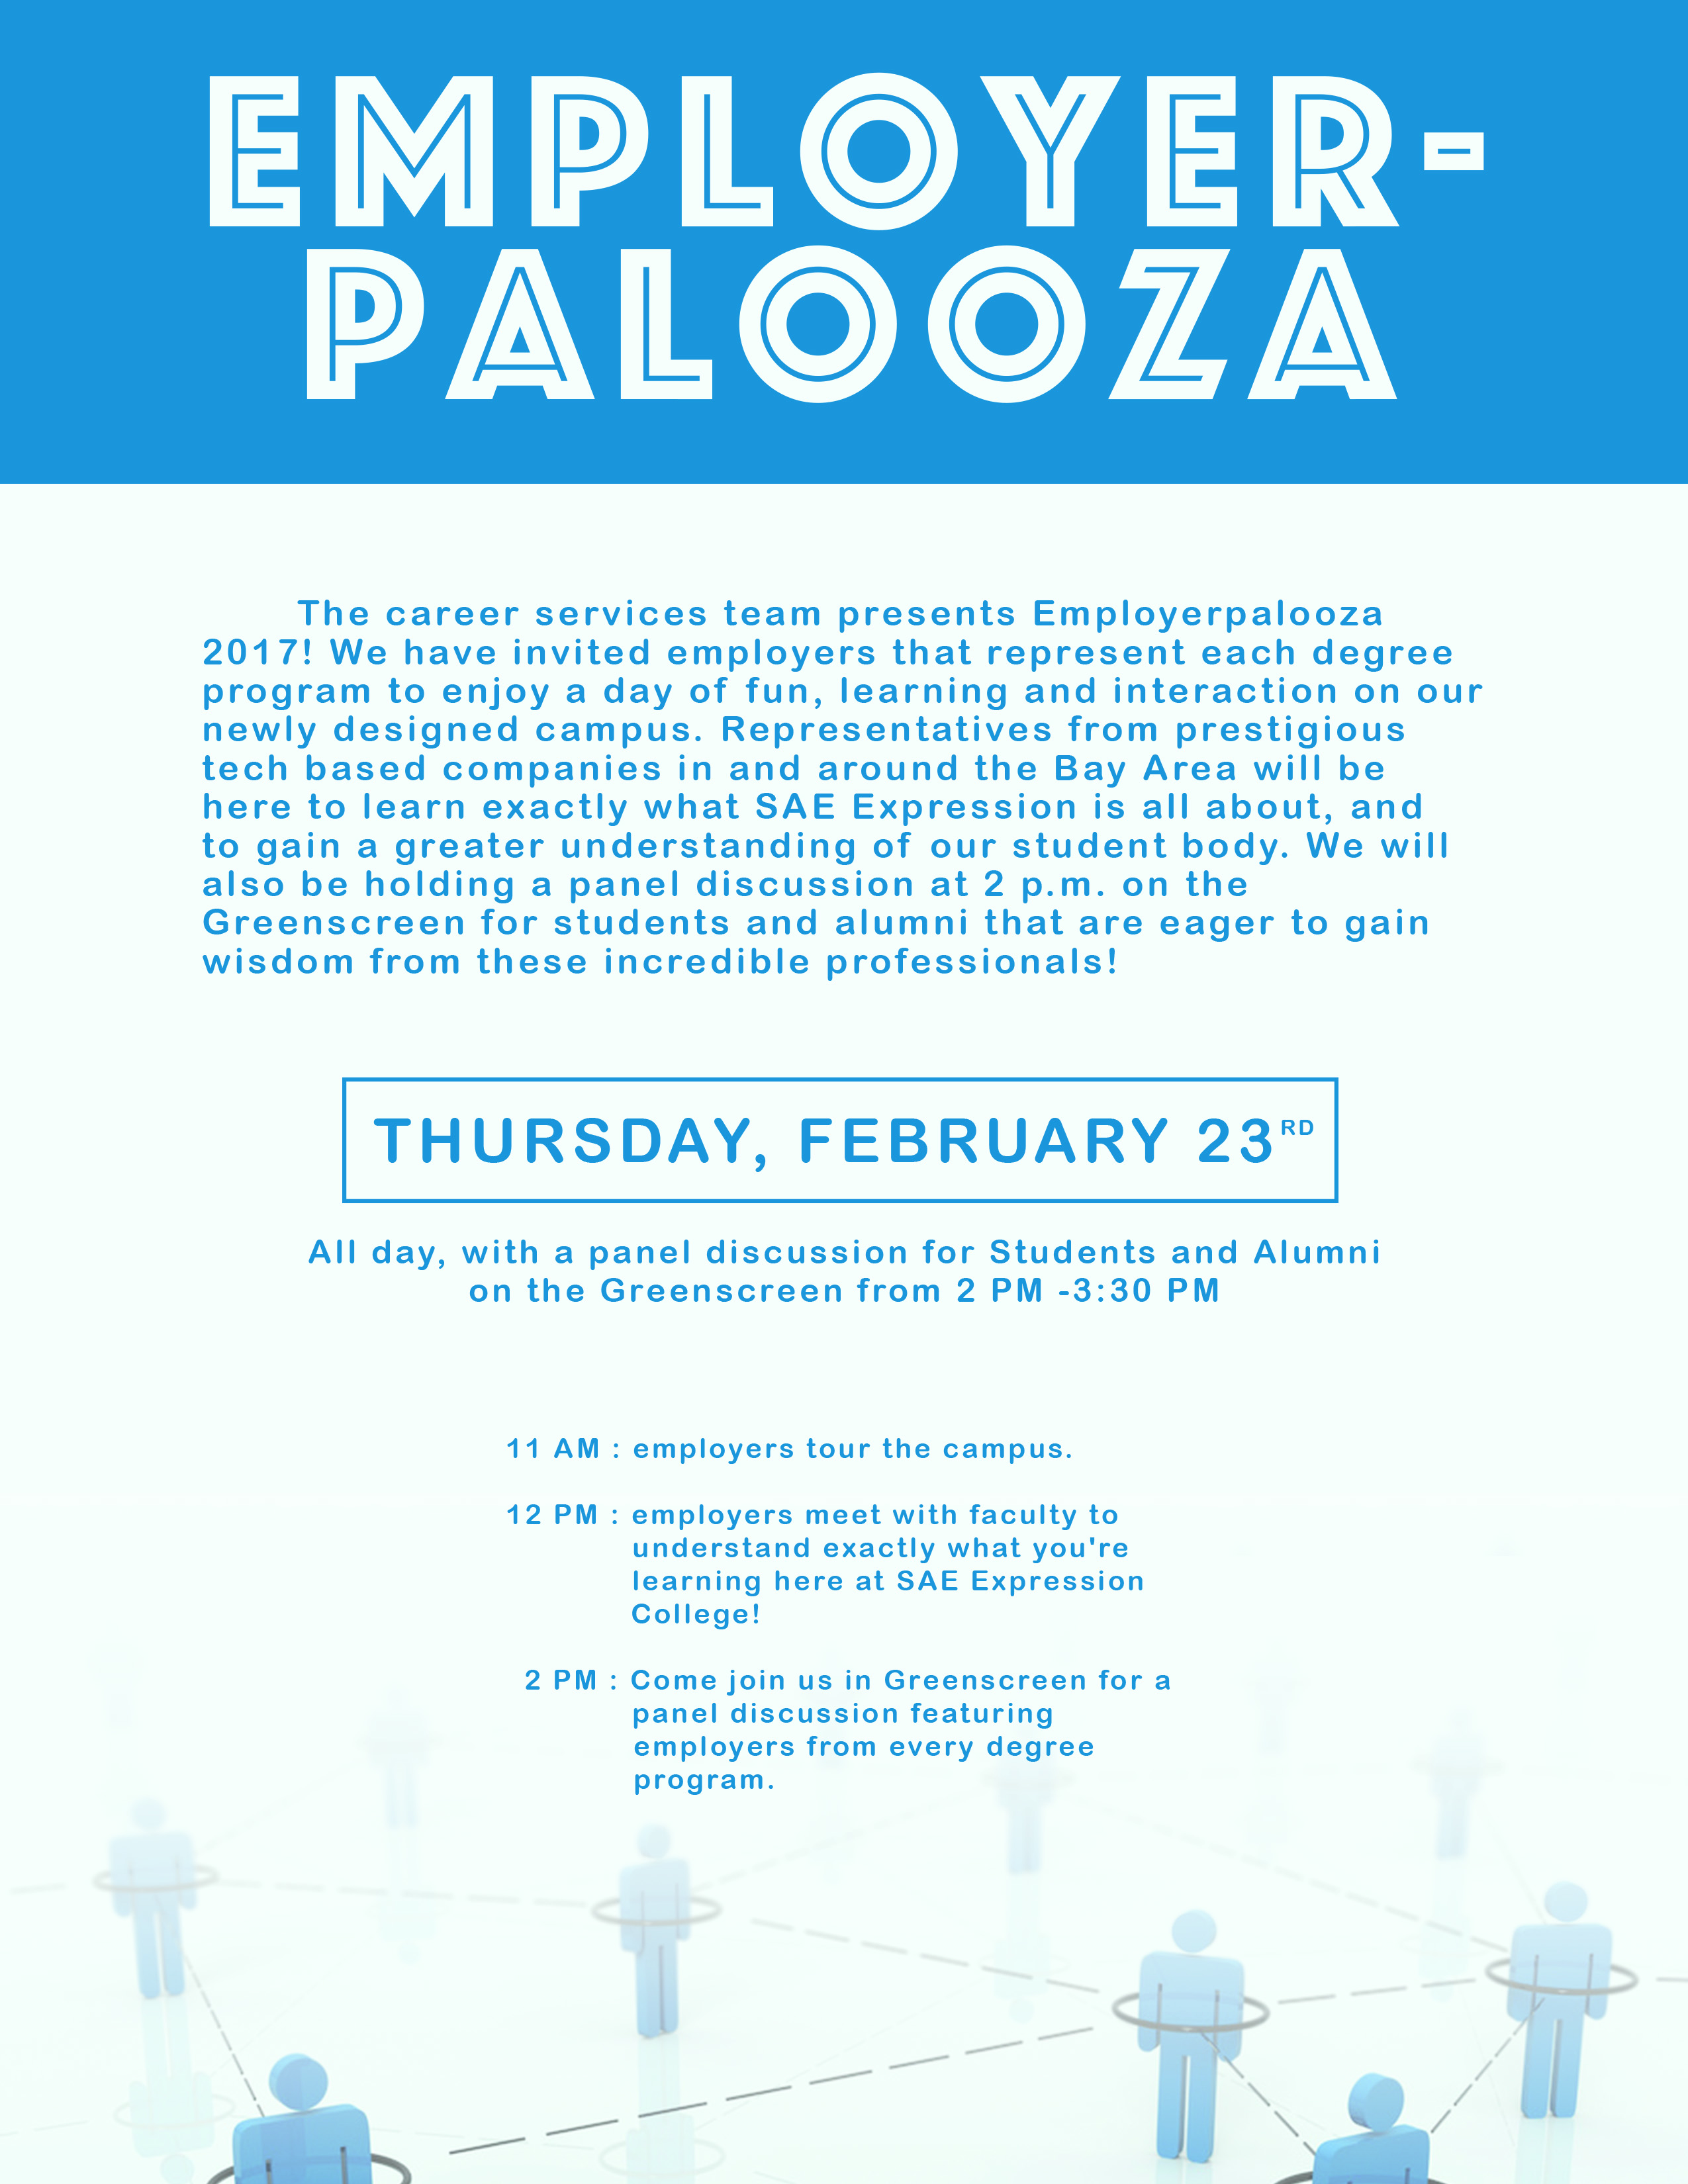 employerpalooza_flyer-3